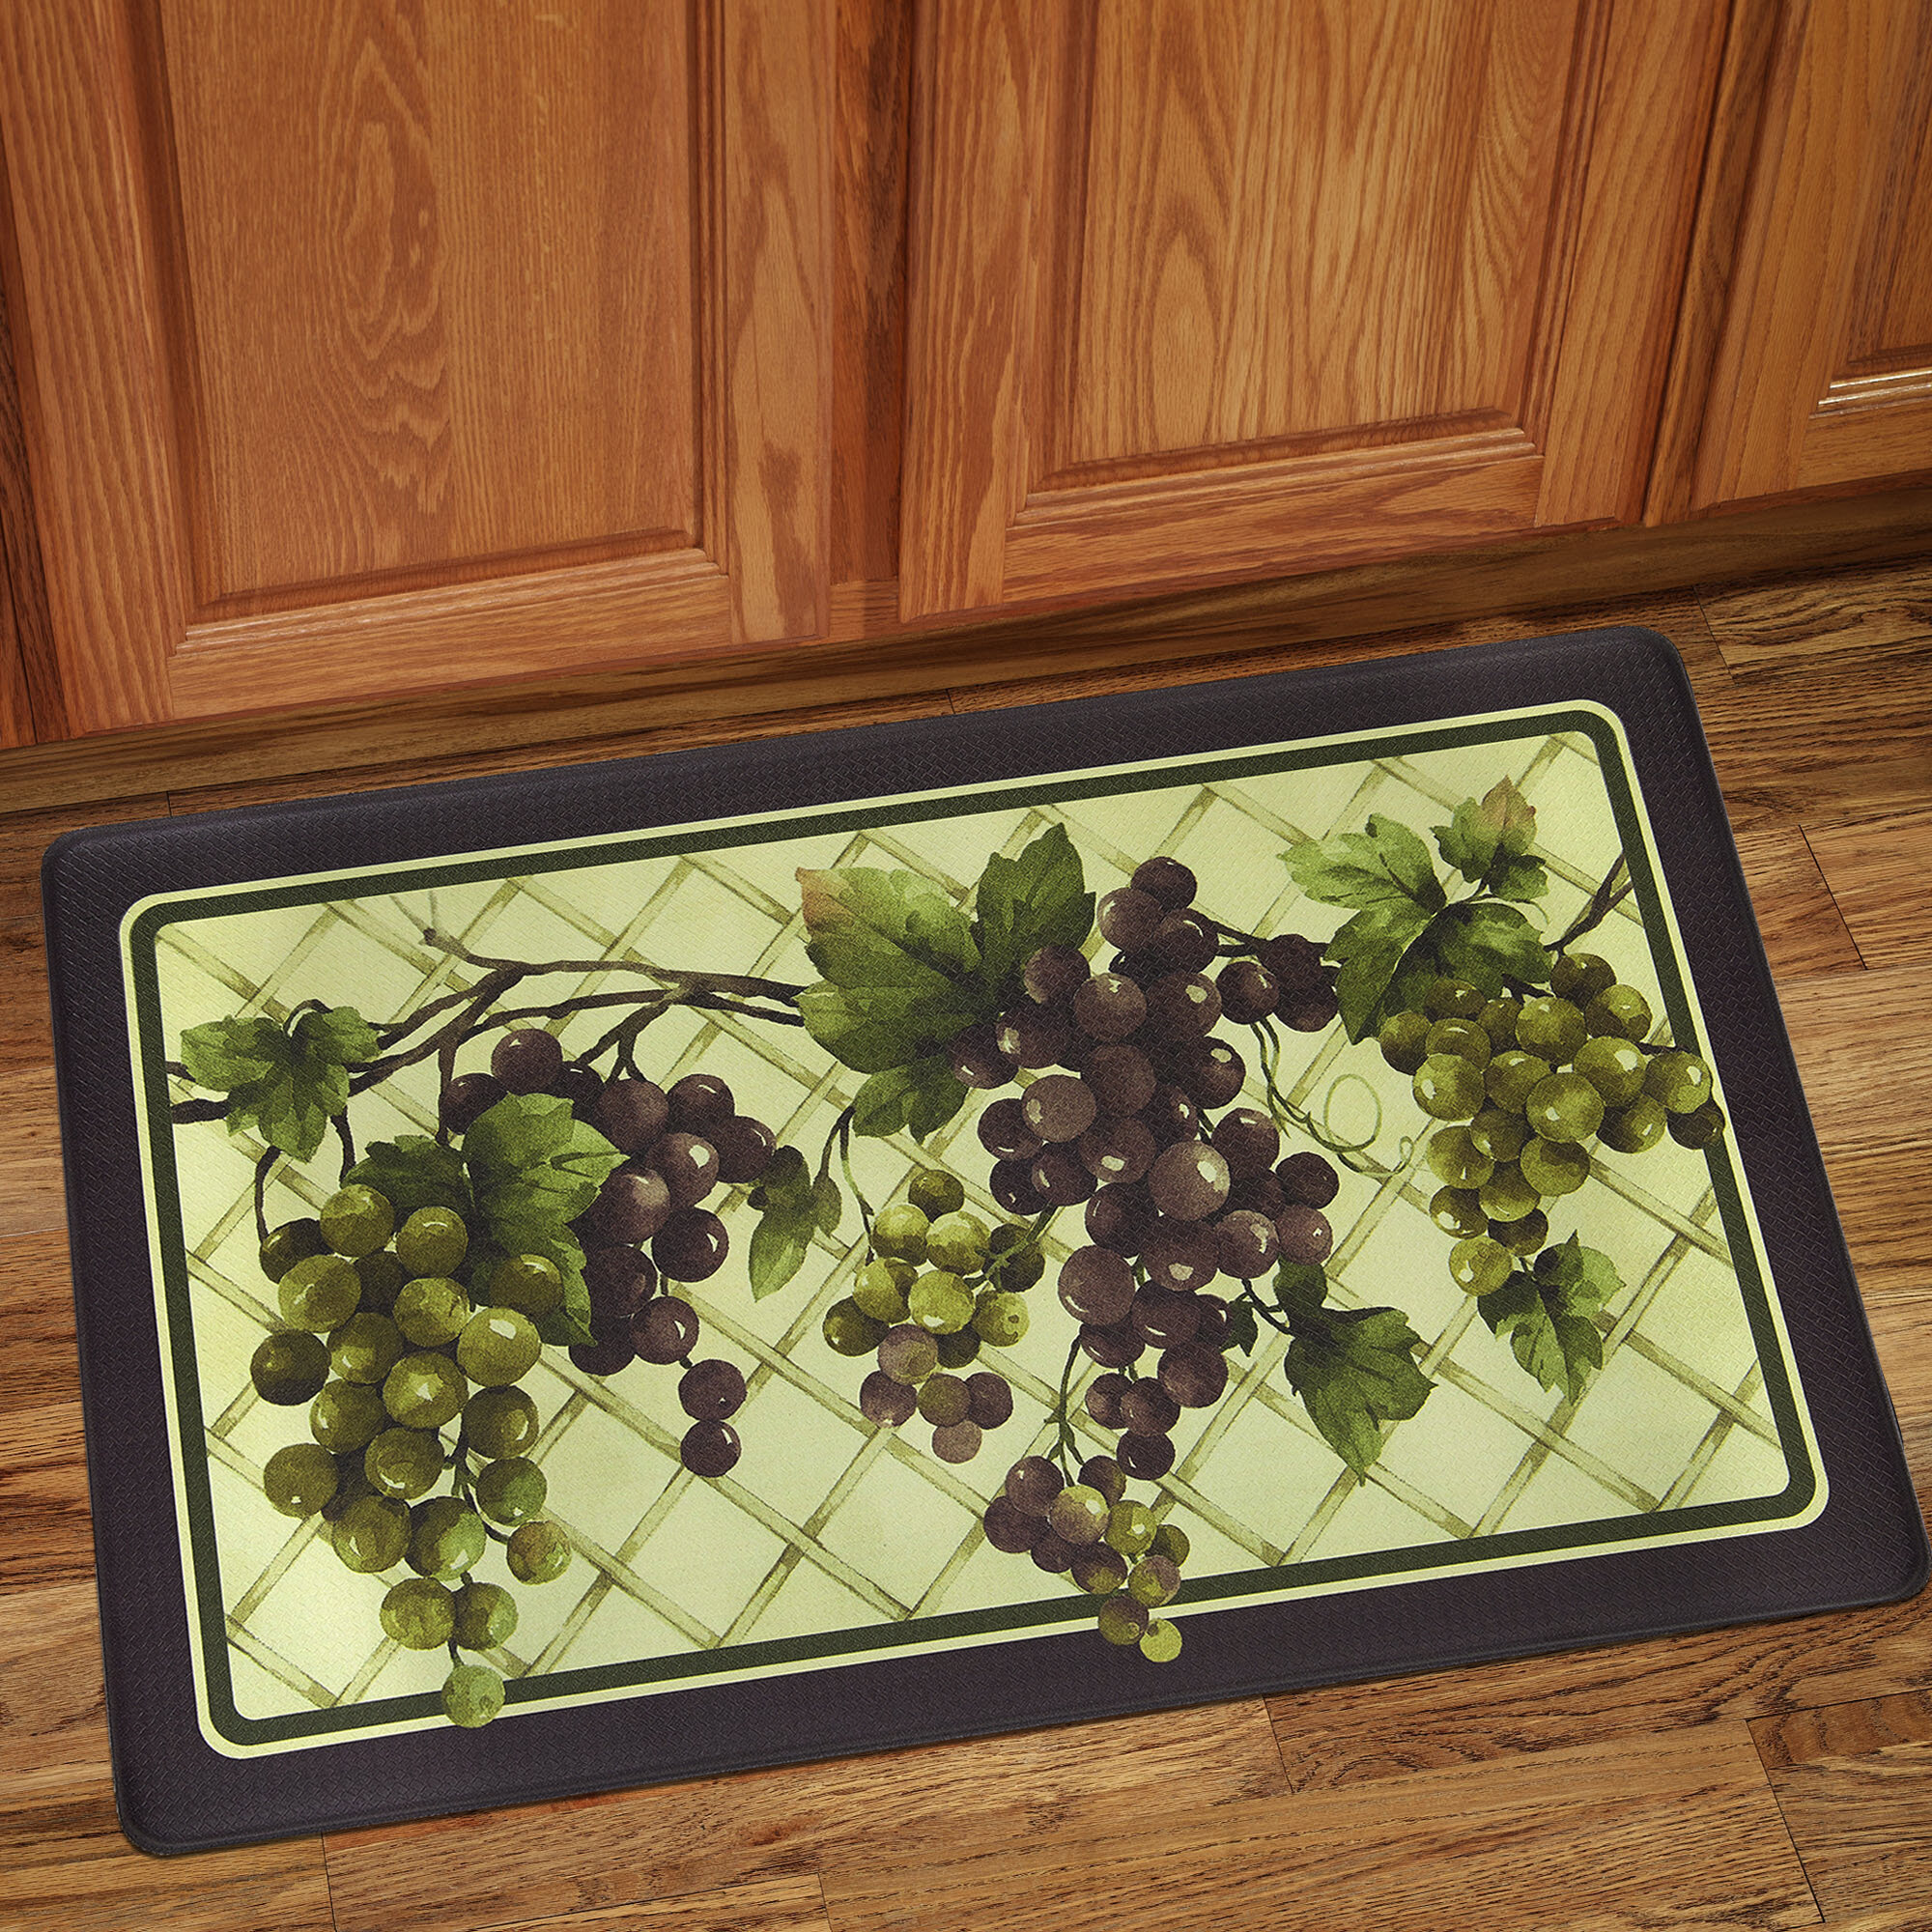 Sweet Home Collection Grapes of Tuscany Anti-Fatigue Kitchen Mat u0026 Reviews | Wayfair.ca & Grapes of Tuscany Anti-Fatigue Kitchen Mat